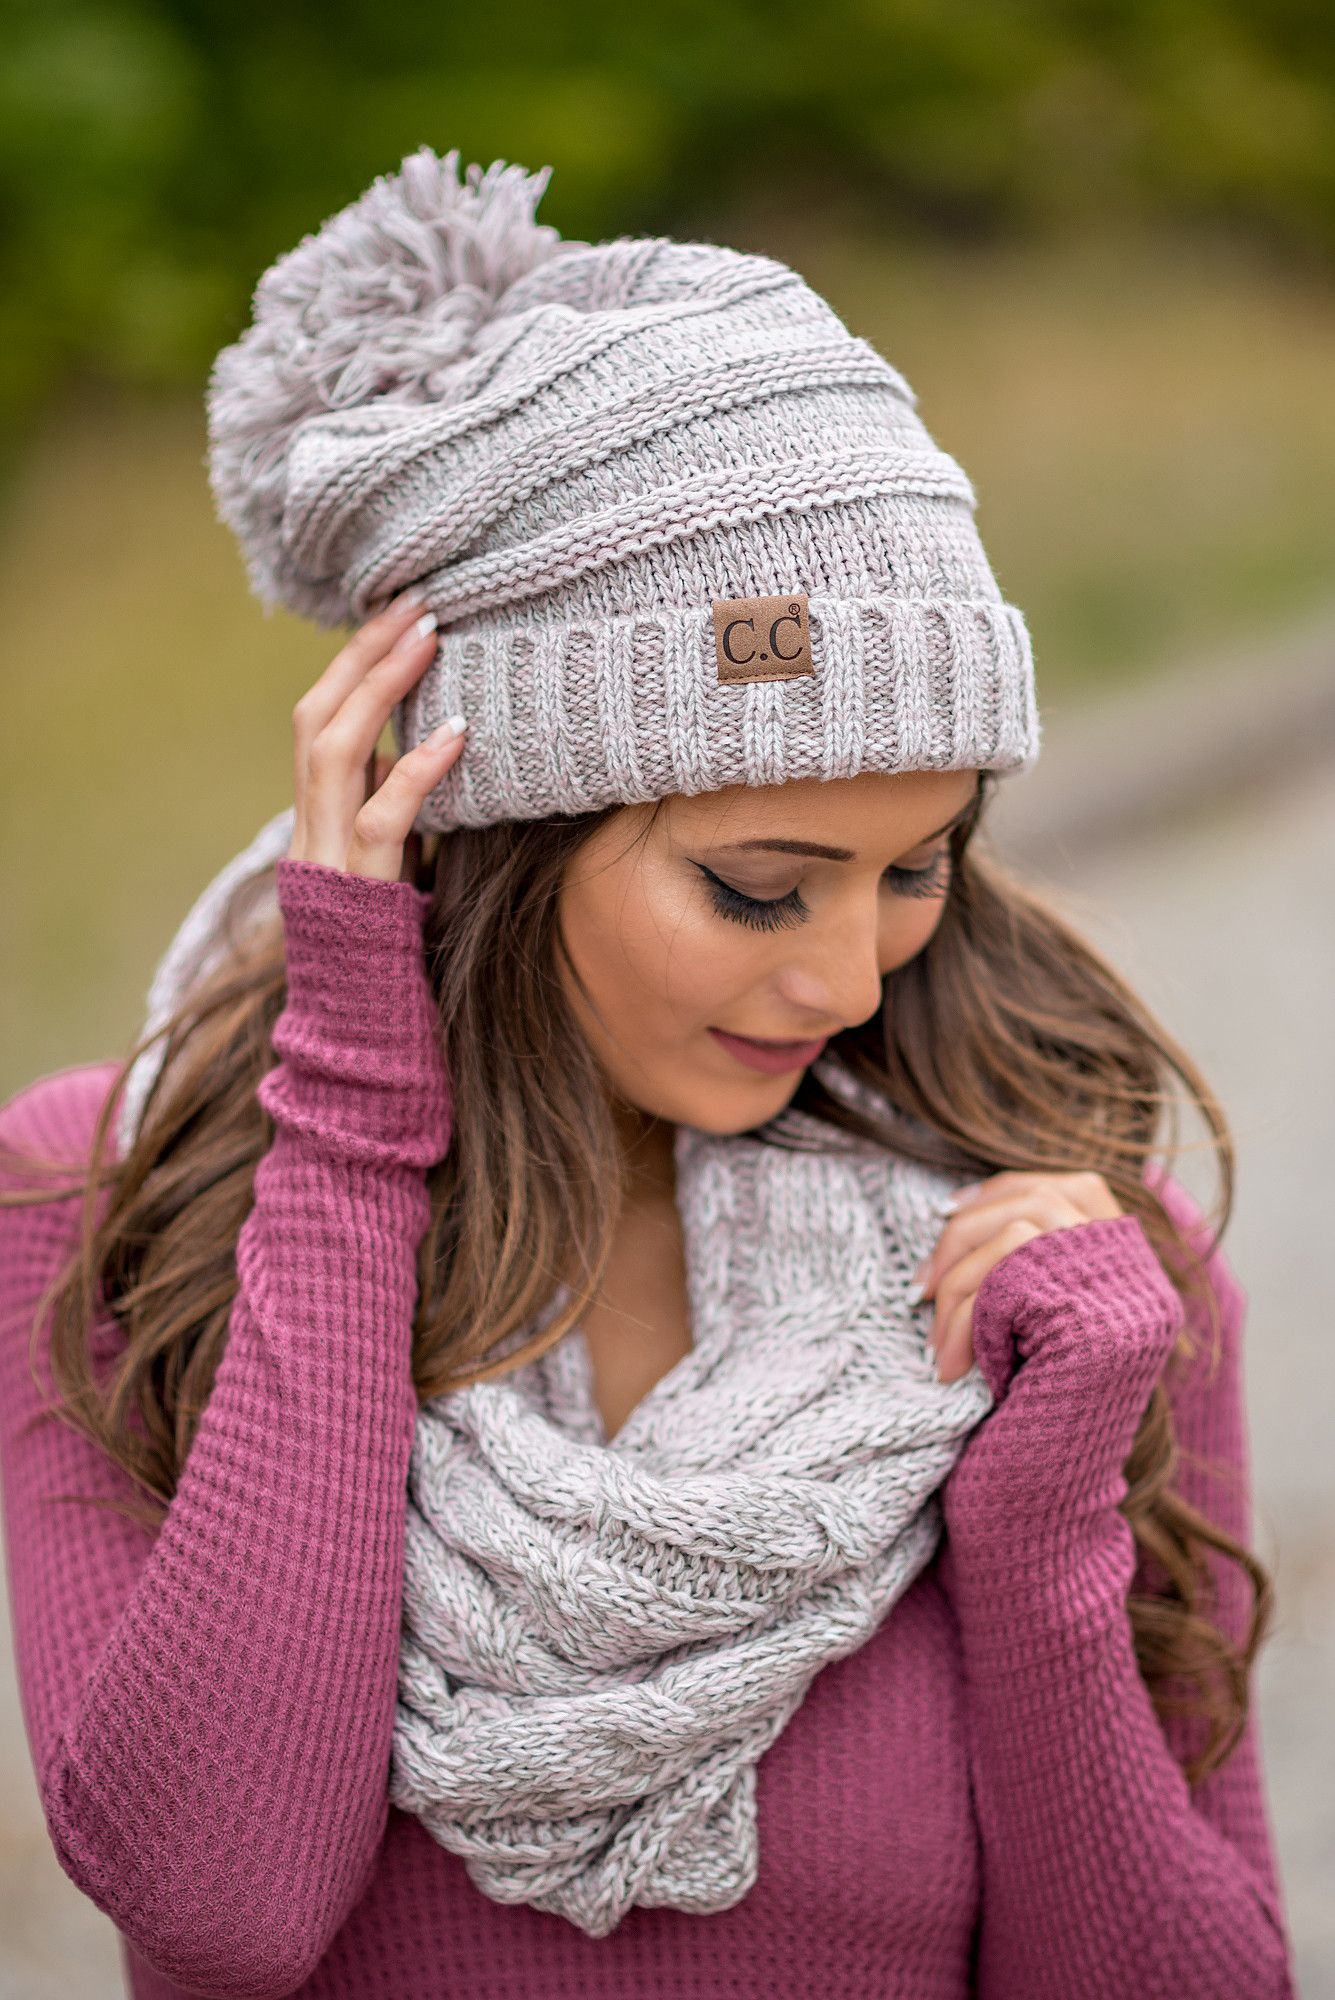 CC Knit Fold Over Pom Beanie (Rose) - NanaMacs.com - 1  24cd840dda6